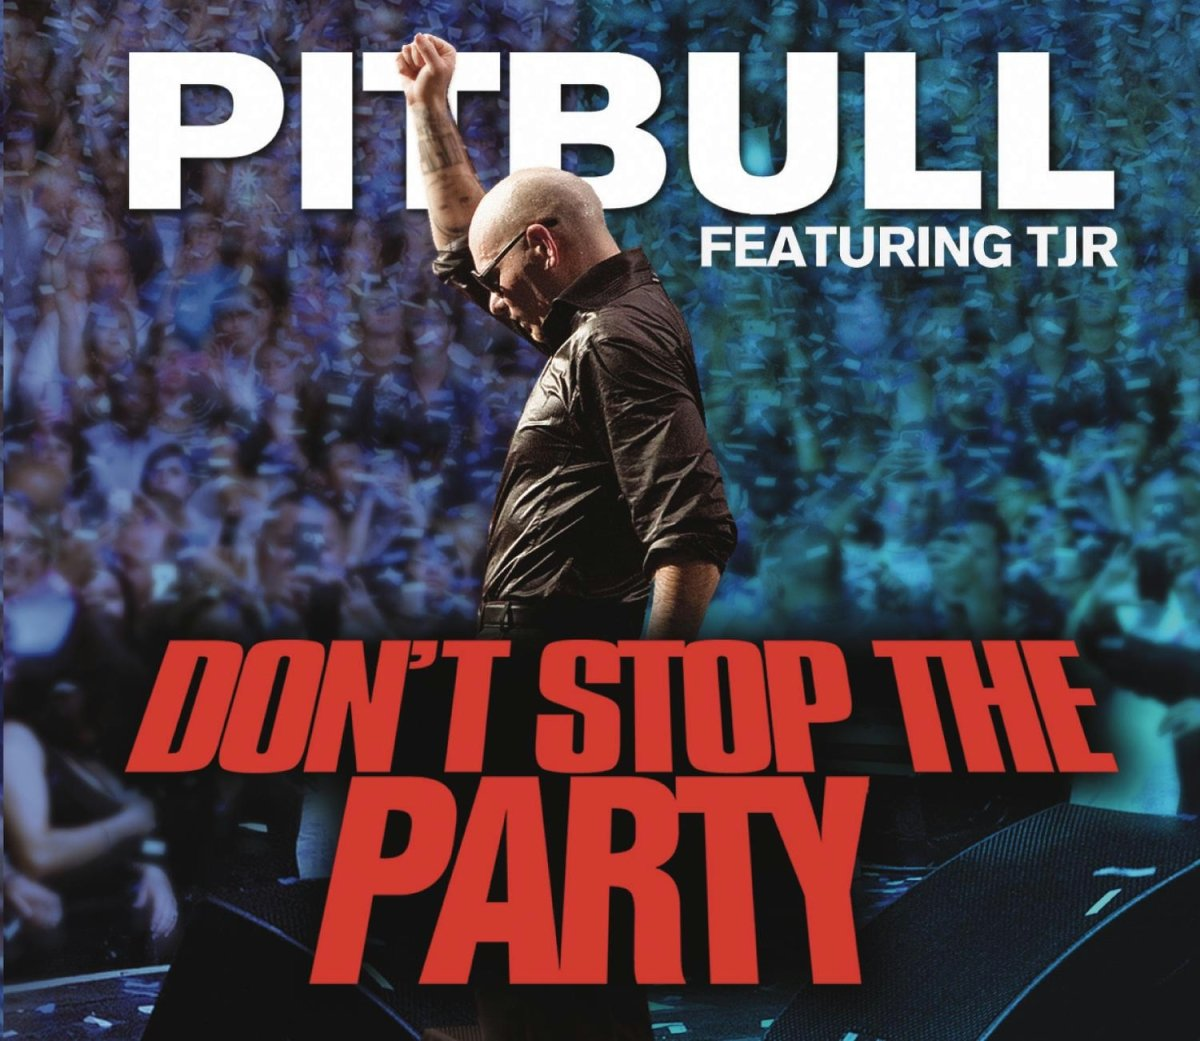 10. Pitbull 'don't stop the party' capital tv's top 30 bank.